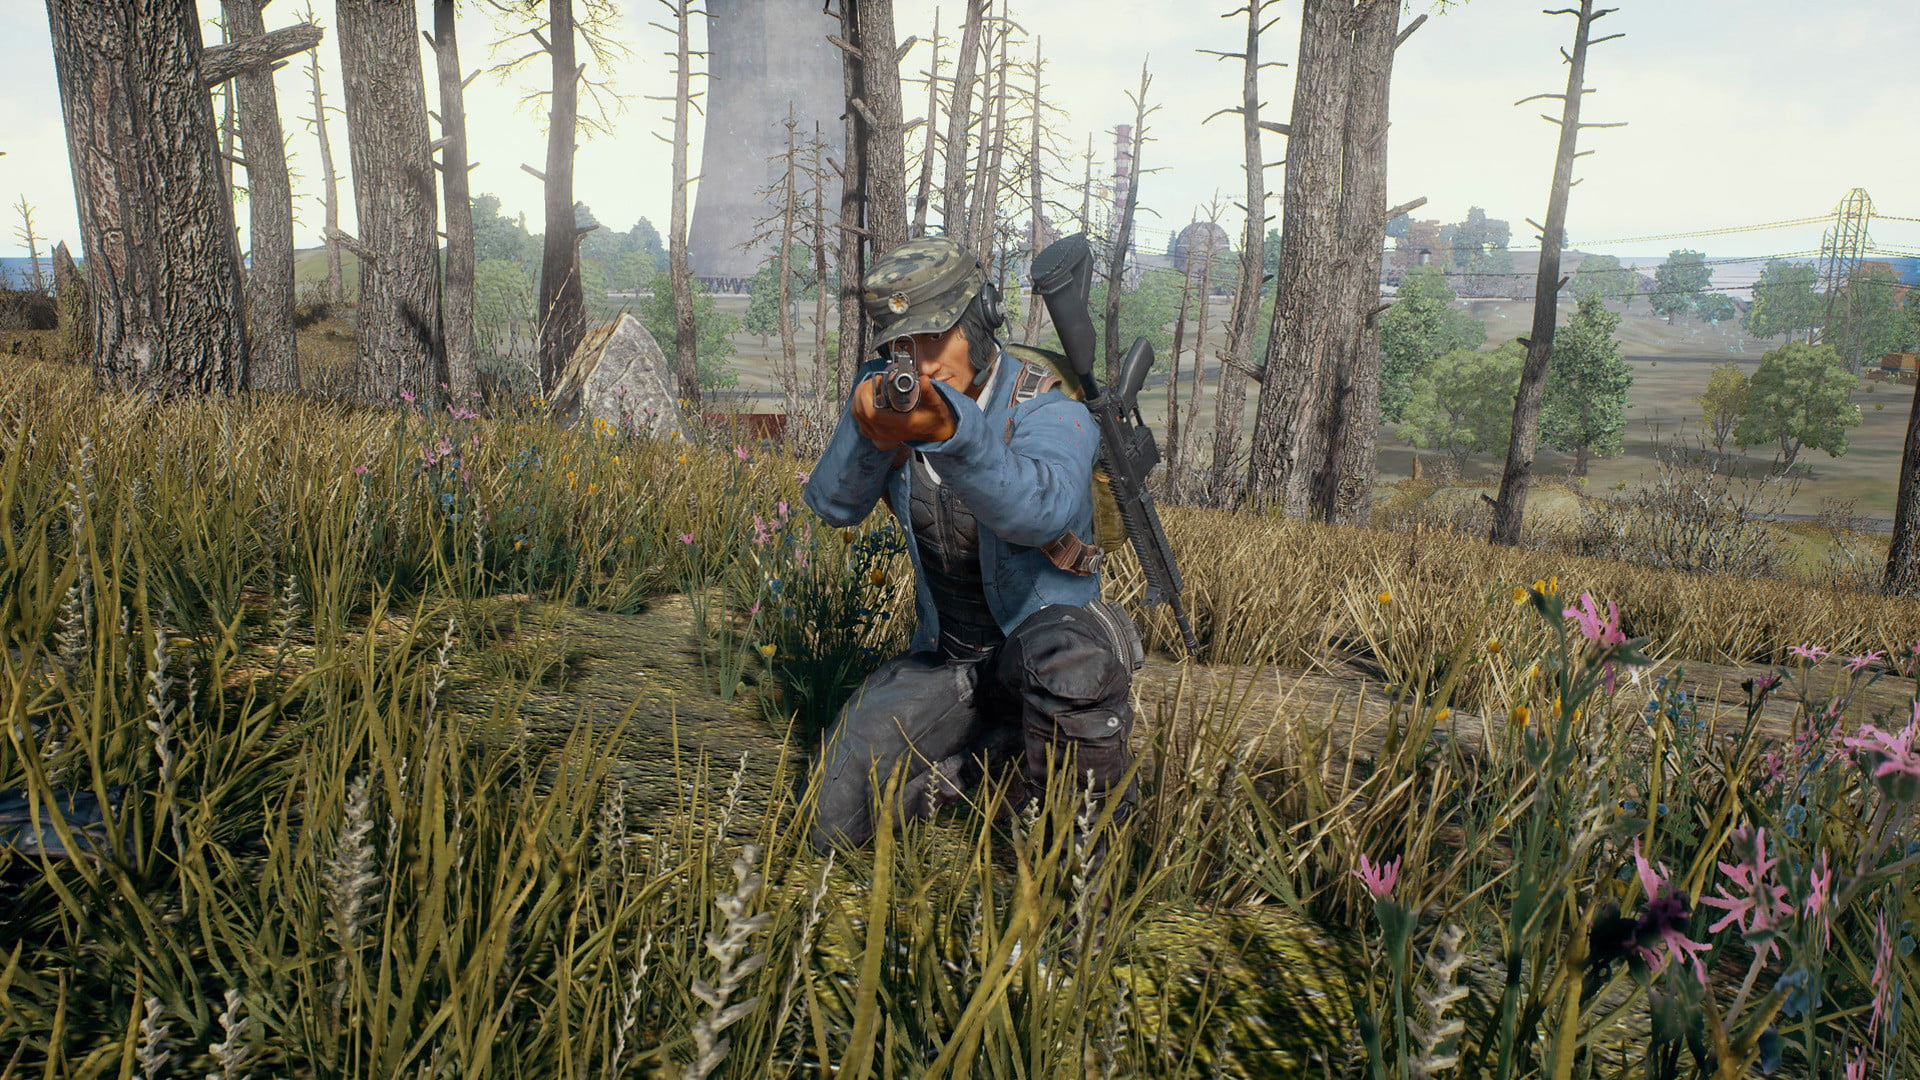 Mobile 'PlayerUnknown's Battlegrounds' games look